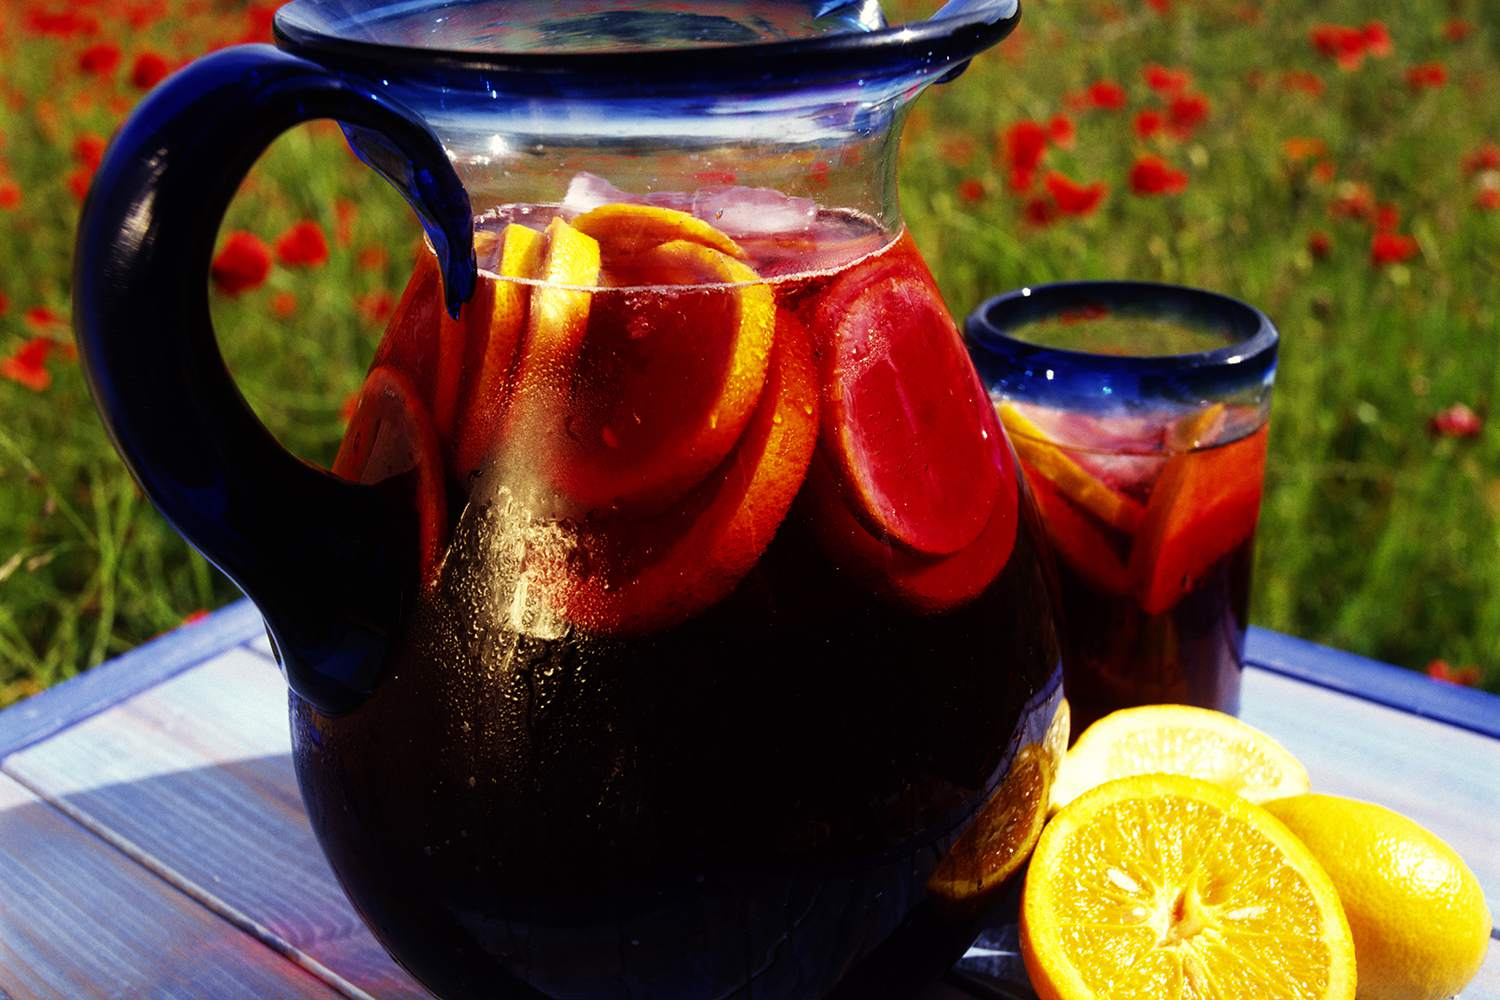 Sangria is a great summer drink to share